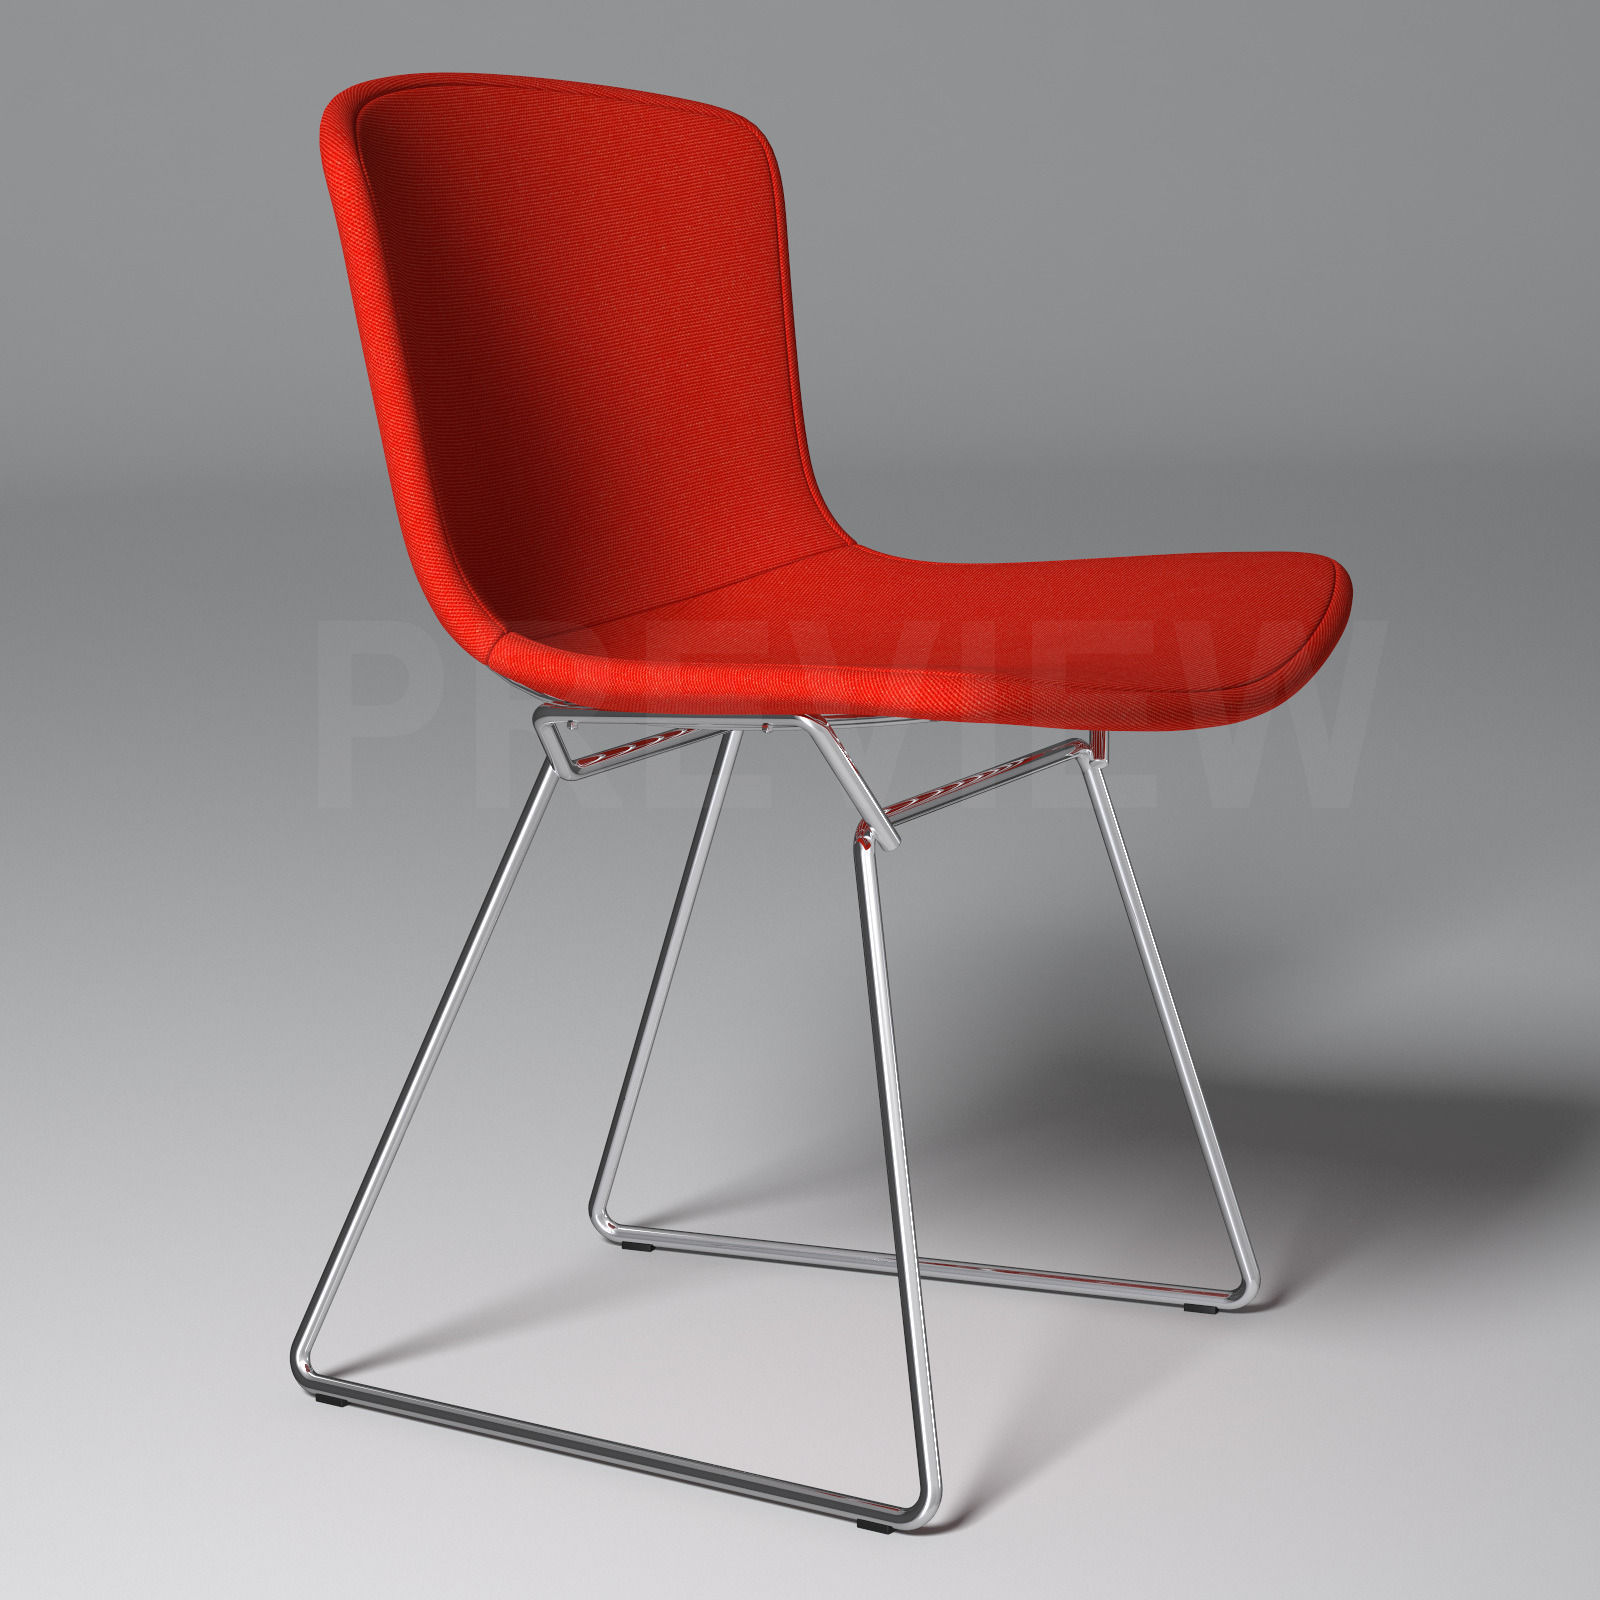 Bertoia Chair Knoll -  bertoia side chair with full cover knoll 3d model max obj fbx 4